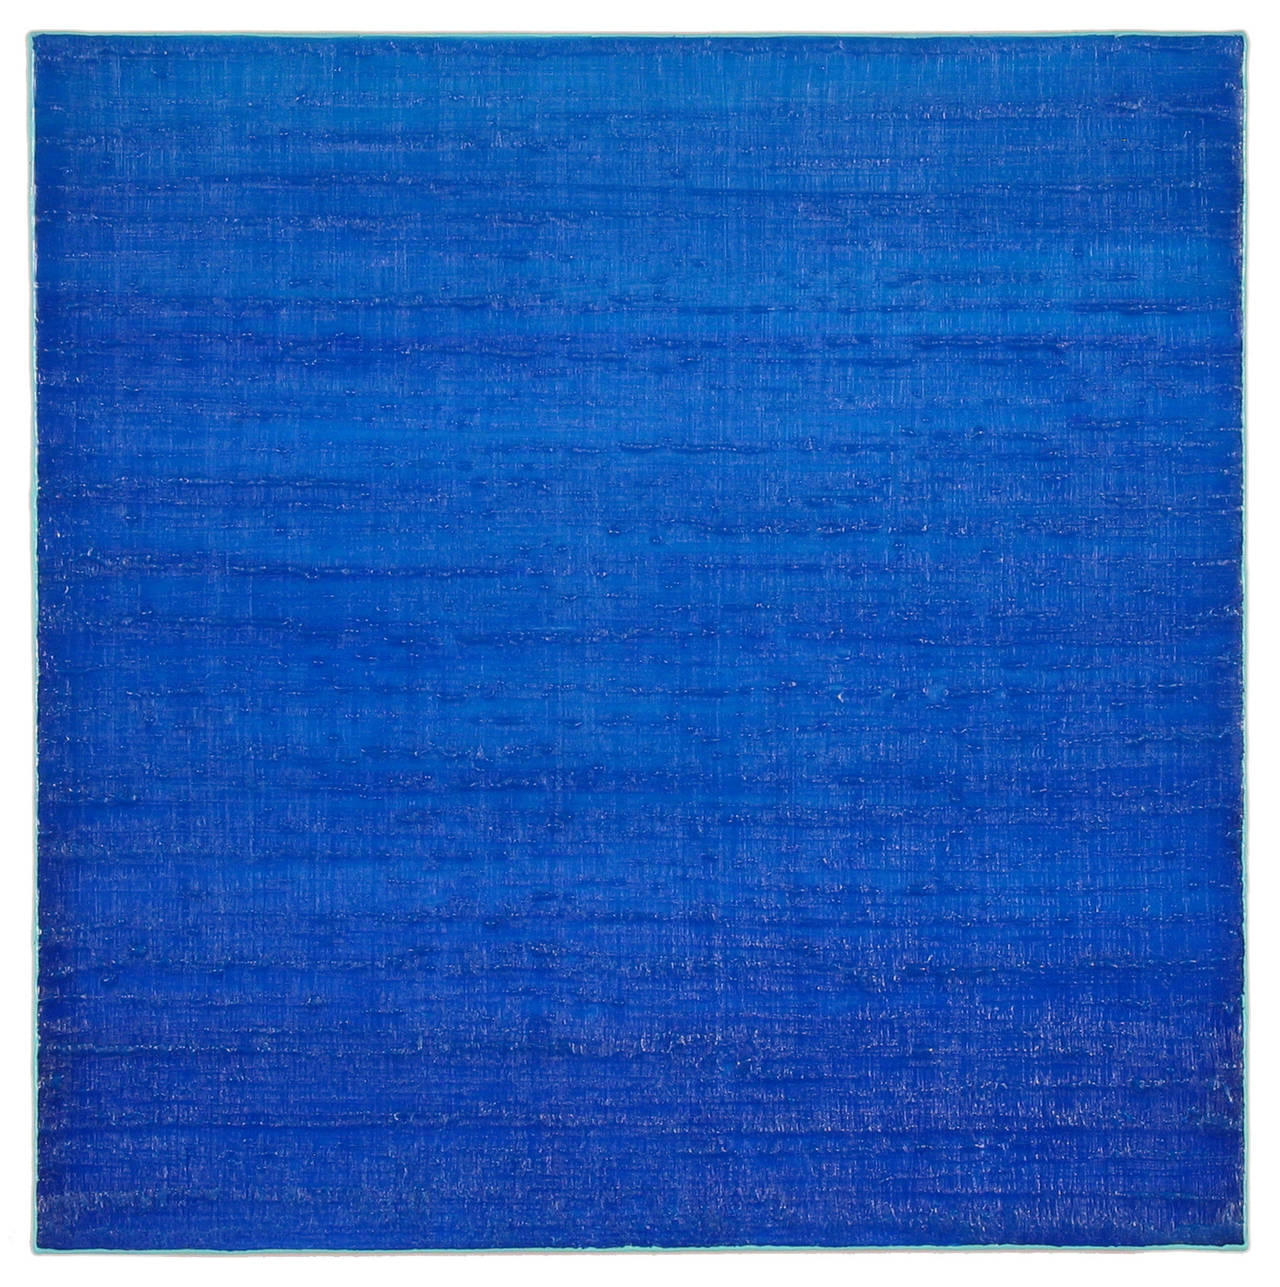 Joanne Mattera Silk Road 280 Royal Blue Encaustic Color Field Painting